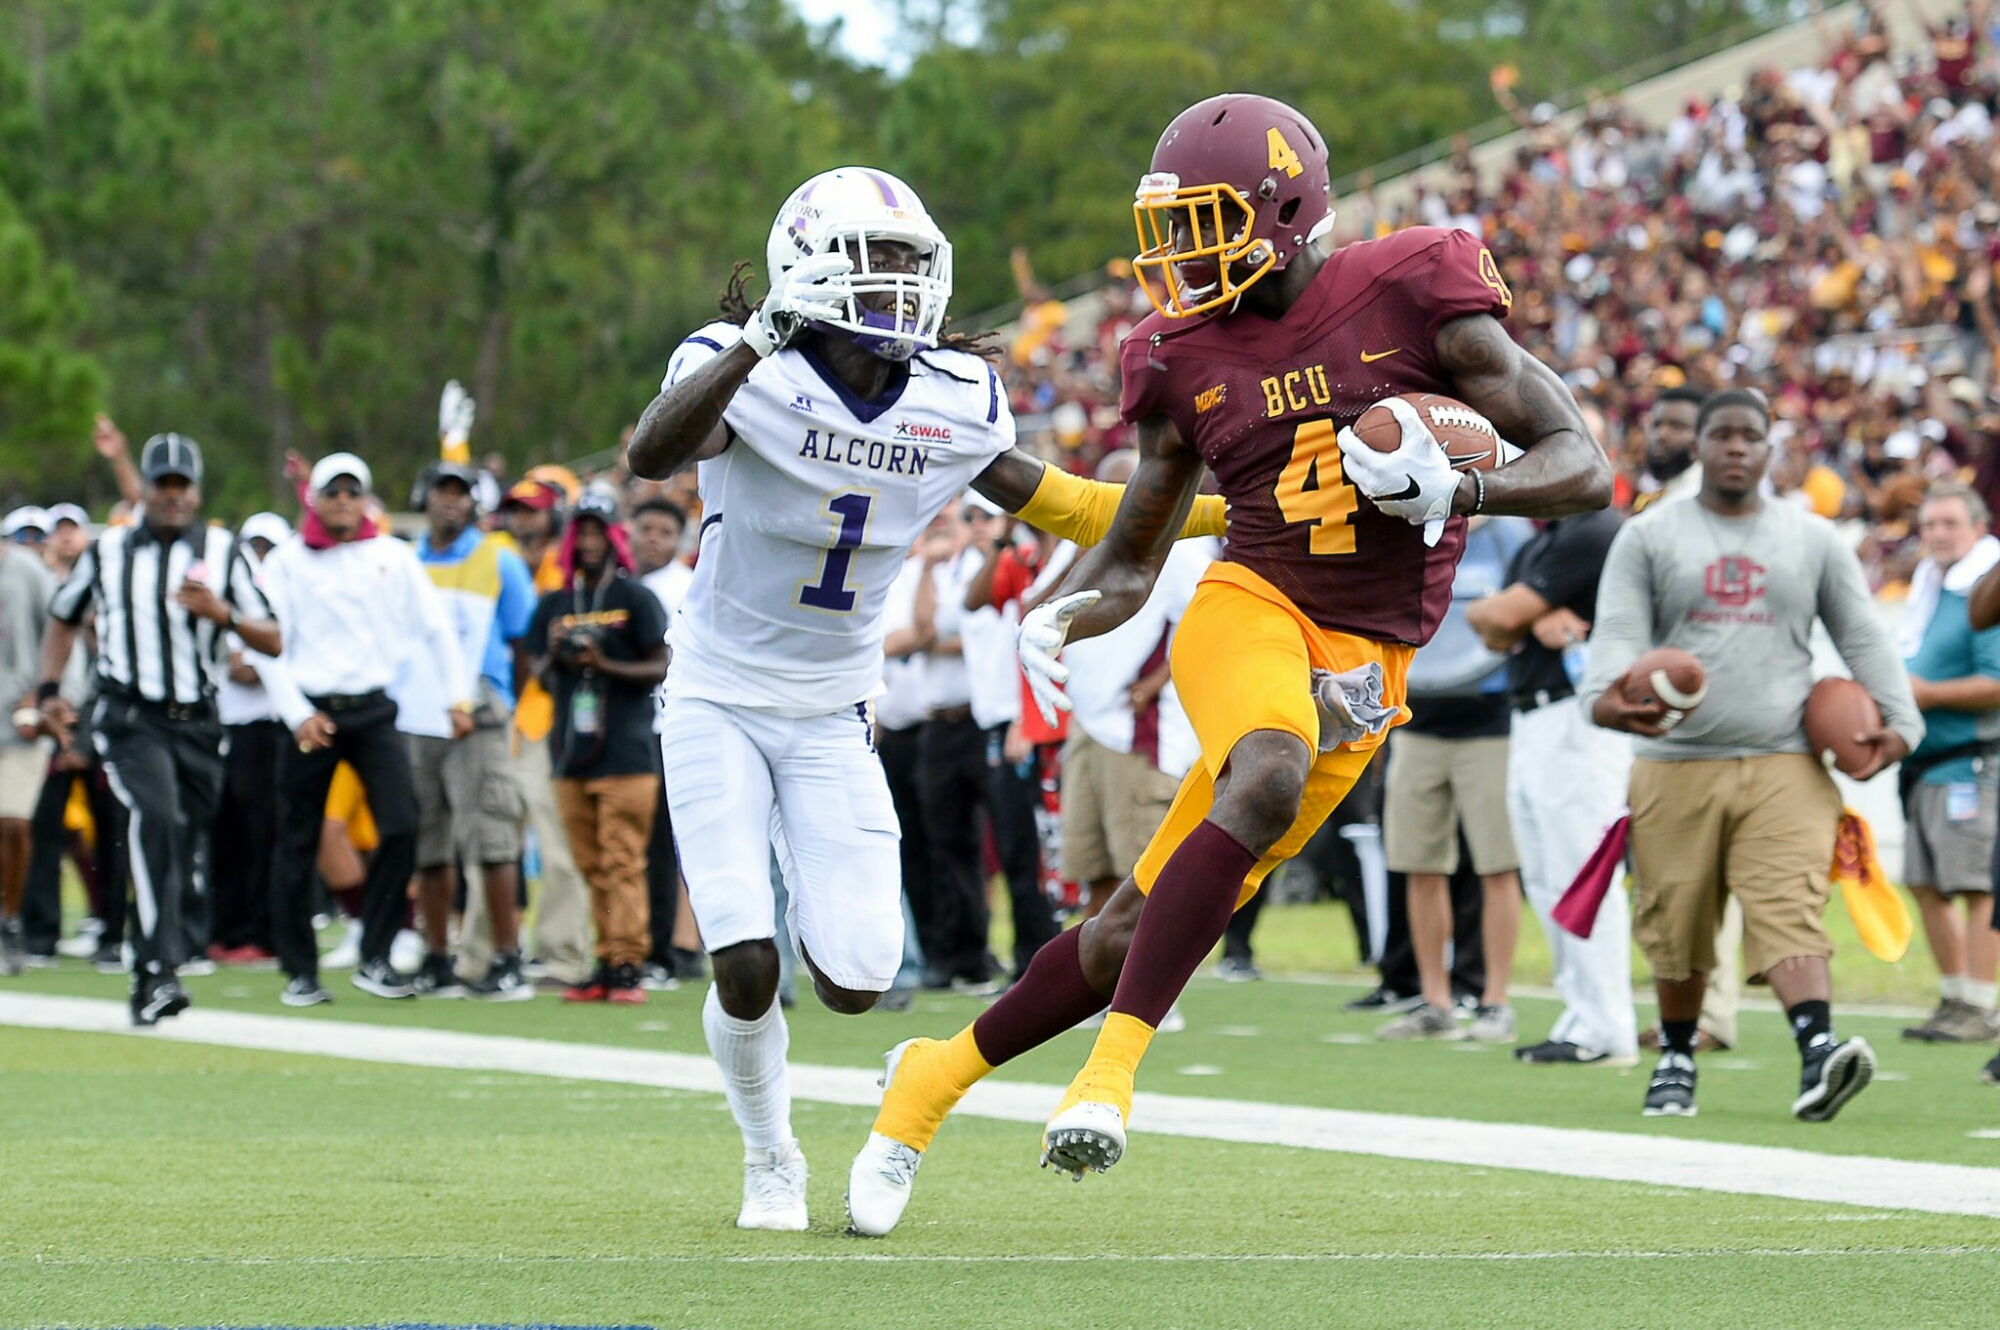 Image result for b-cu football 2016